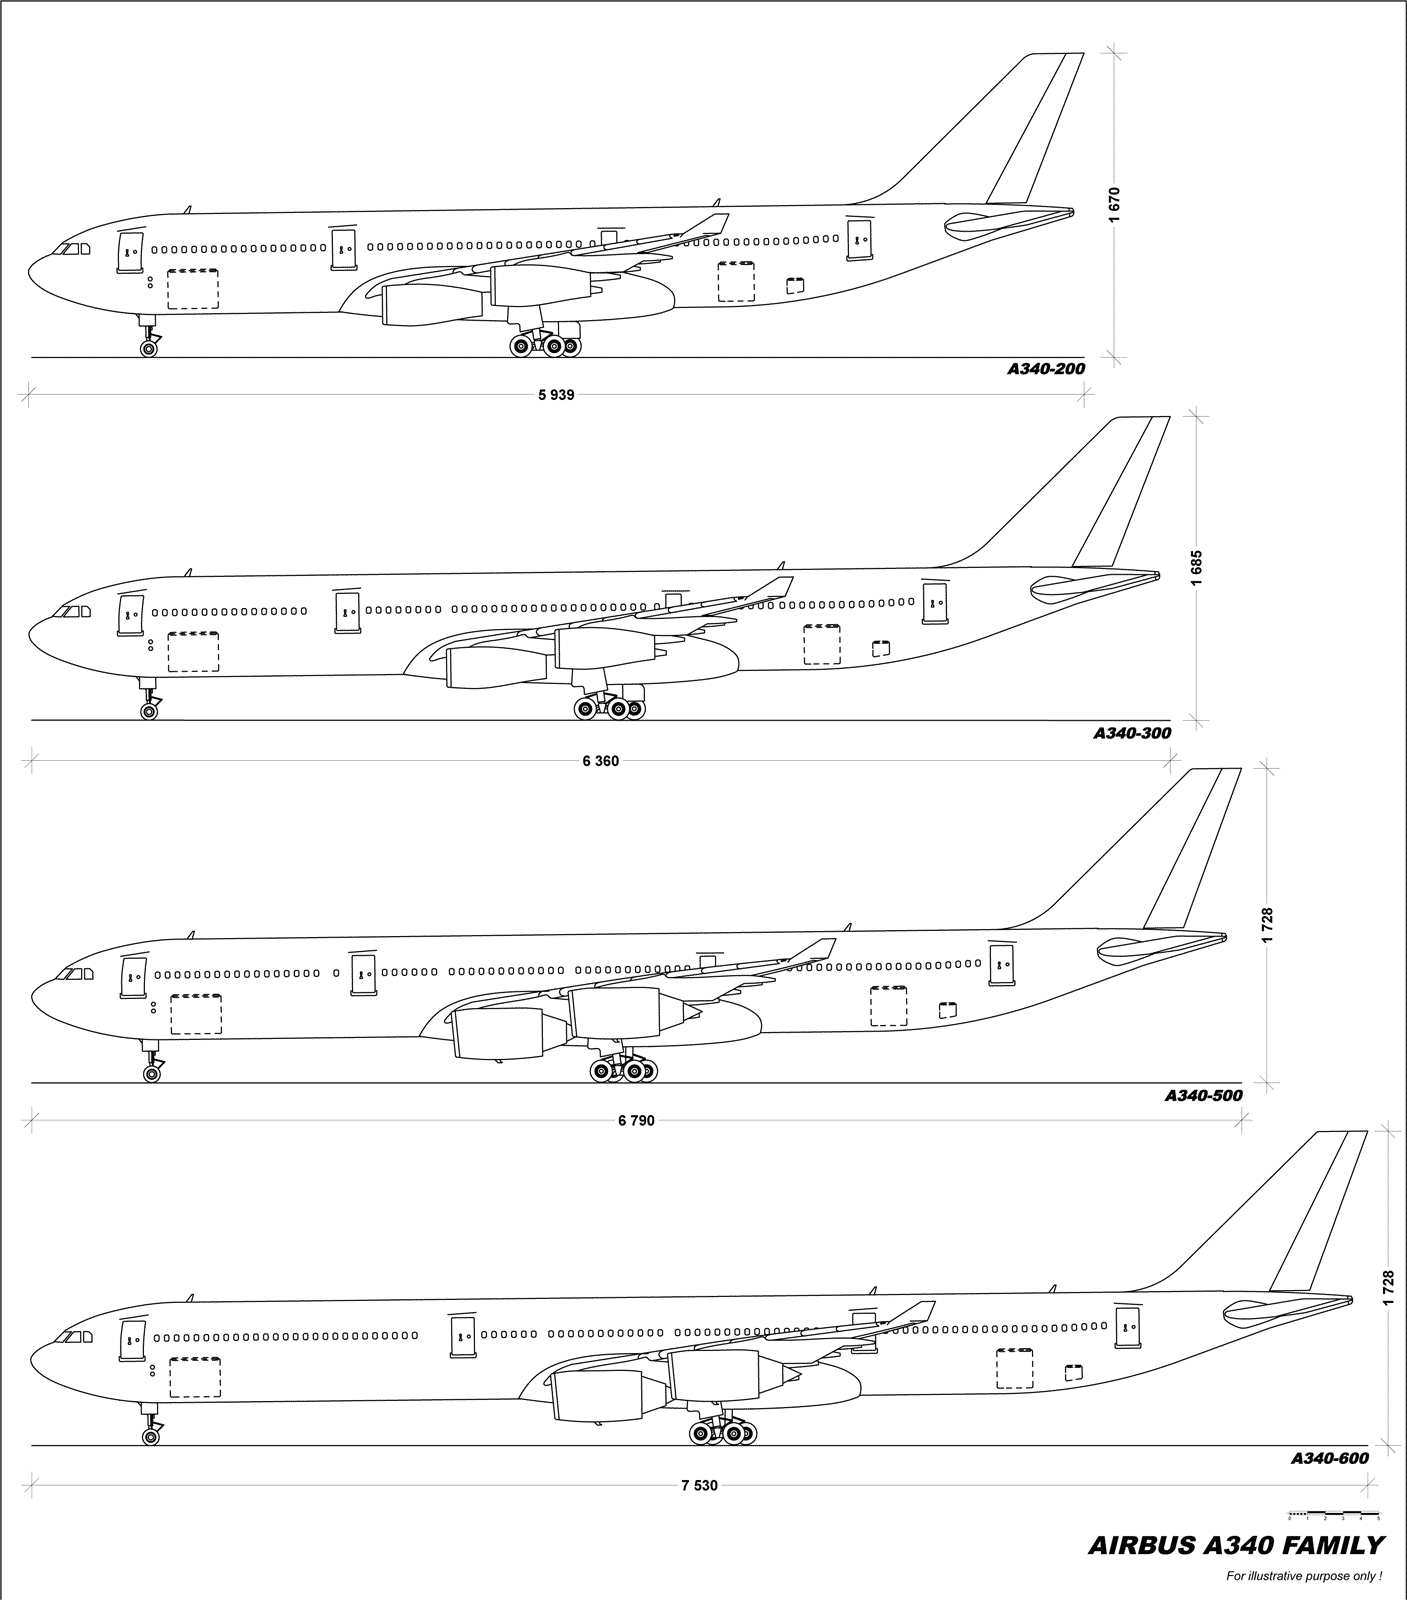 Herpa Repulok 1 200 Snapfit further General Aviation Cutaways further 343610646541053161 in addition Aircraft Winglets additionally Virgin Upper Class S le Menu. on airbus a340 600